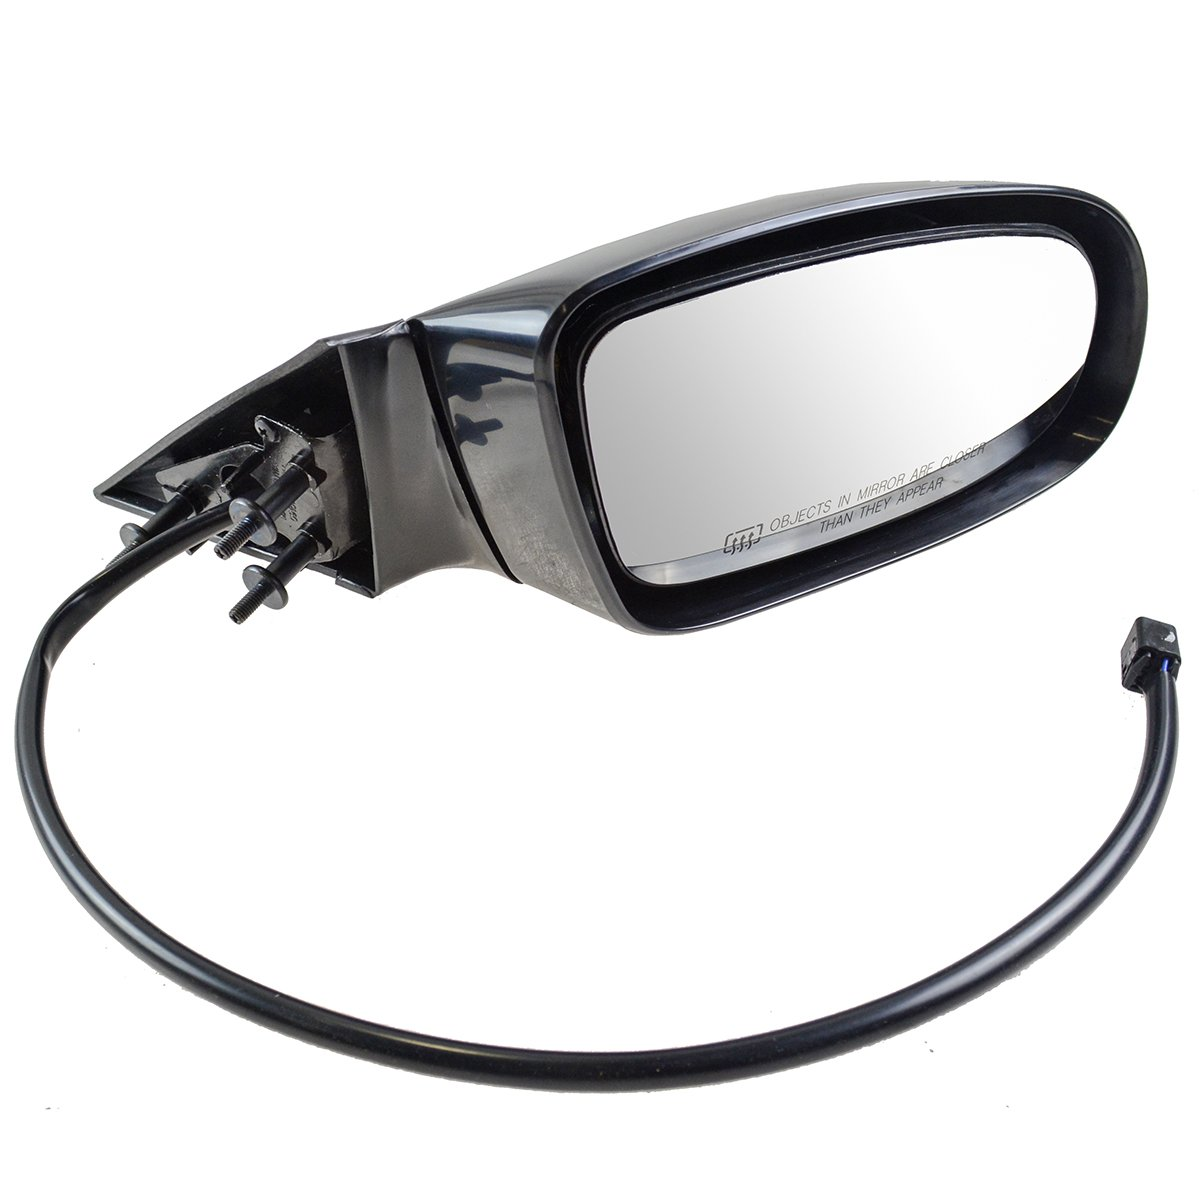 Replacement Mirror Glass for 95-96 Roadmaster// Fleetwood// Caprice Driver Side